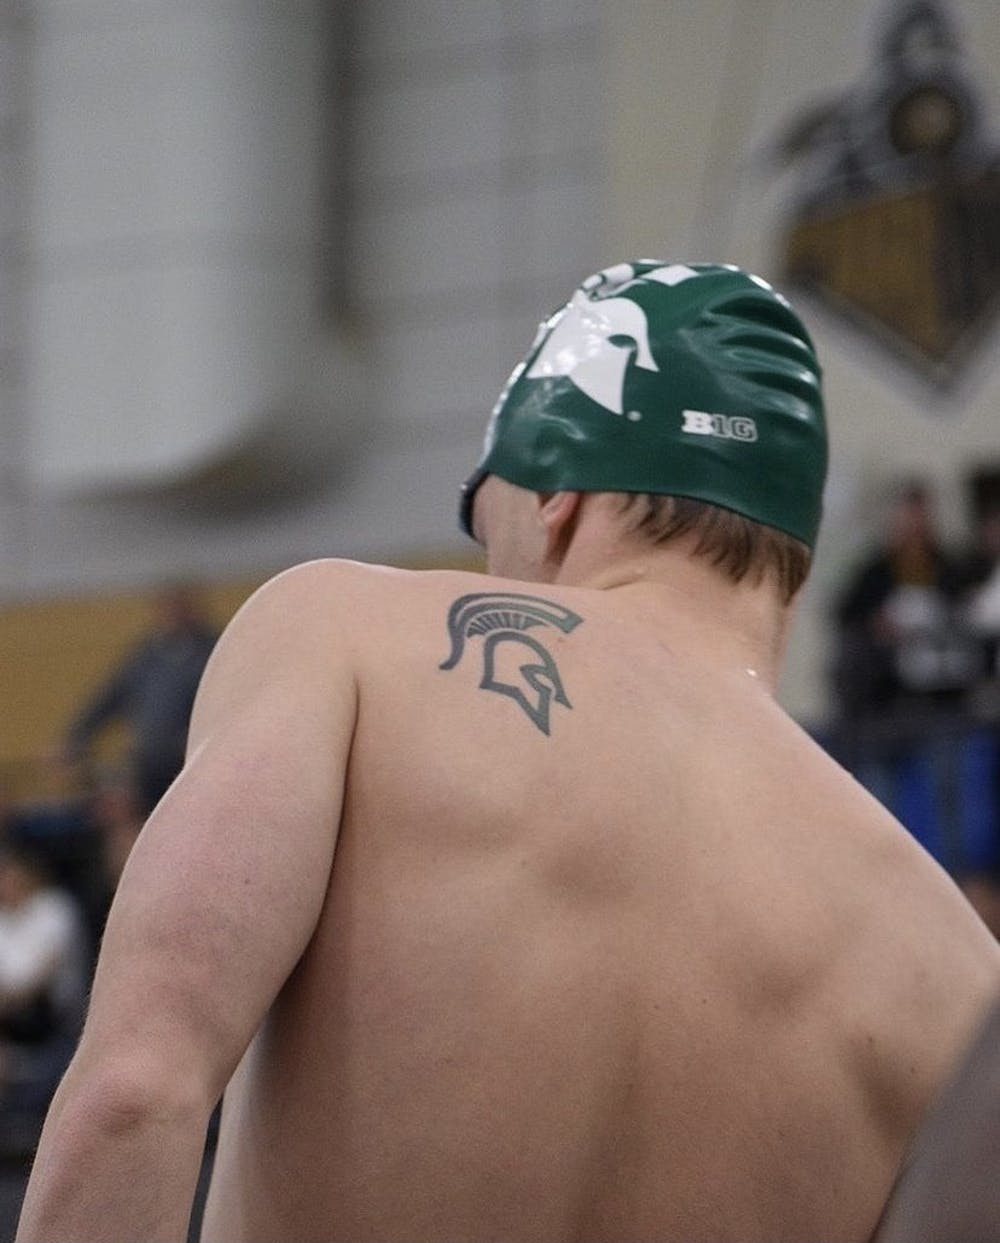 Phillip Meffert prepares for one of his events during a swim meet while in college. Meffert is a senior, the tattoo on his left shoulder is a long-time tradition for members of the Swim & Dive program to get while competing for Michigan State. (Credit: Phillip Meffert / Courtesy)